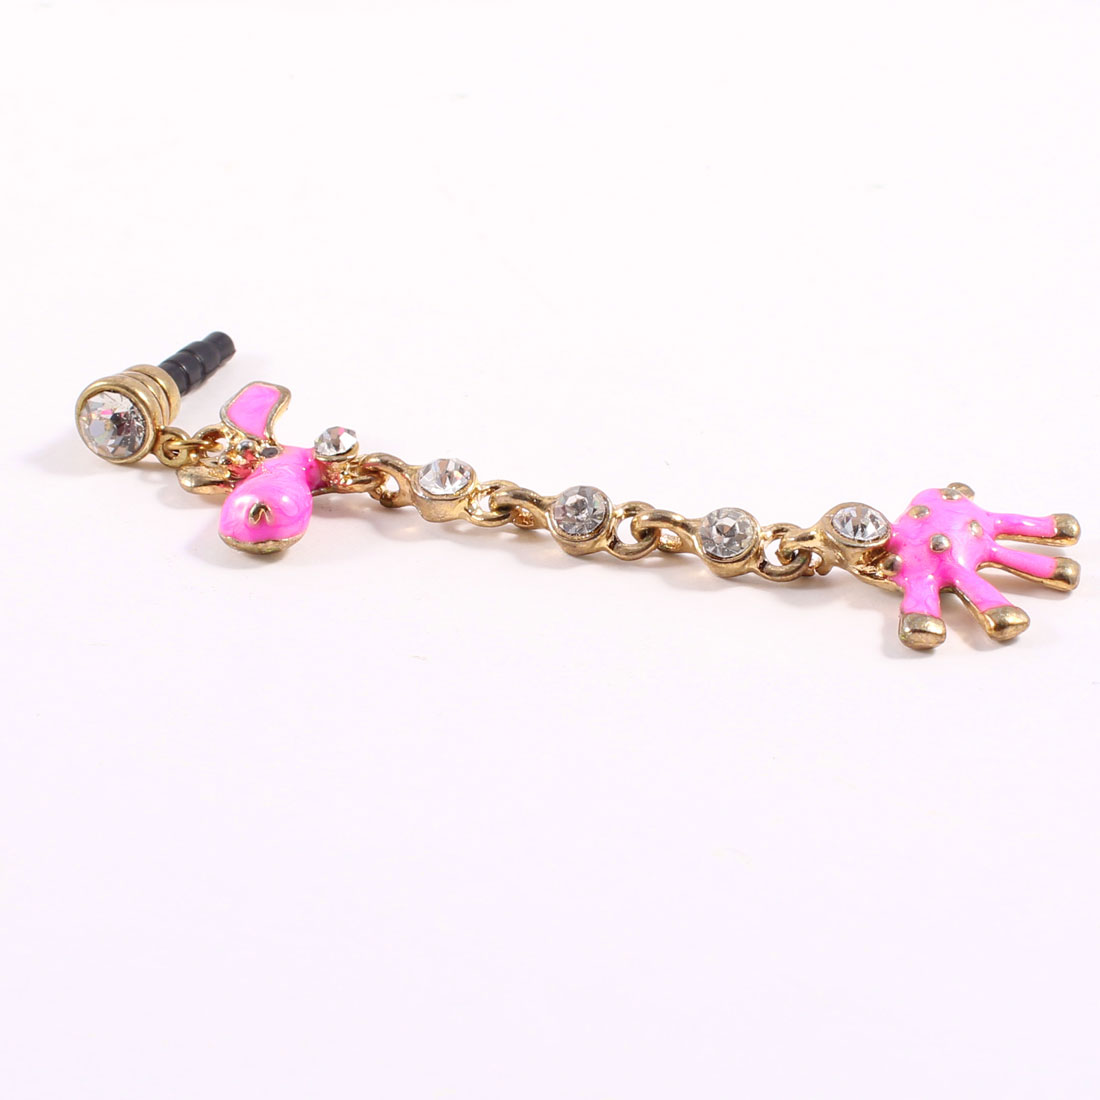 Rhinestone Giraffe Dangle 3.5mm Dust Stopper Earphone Cap Pink for Mp3 Mp4